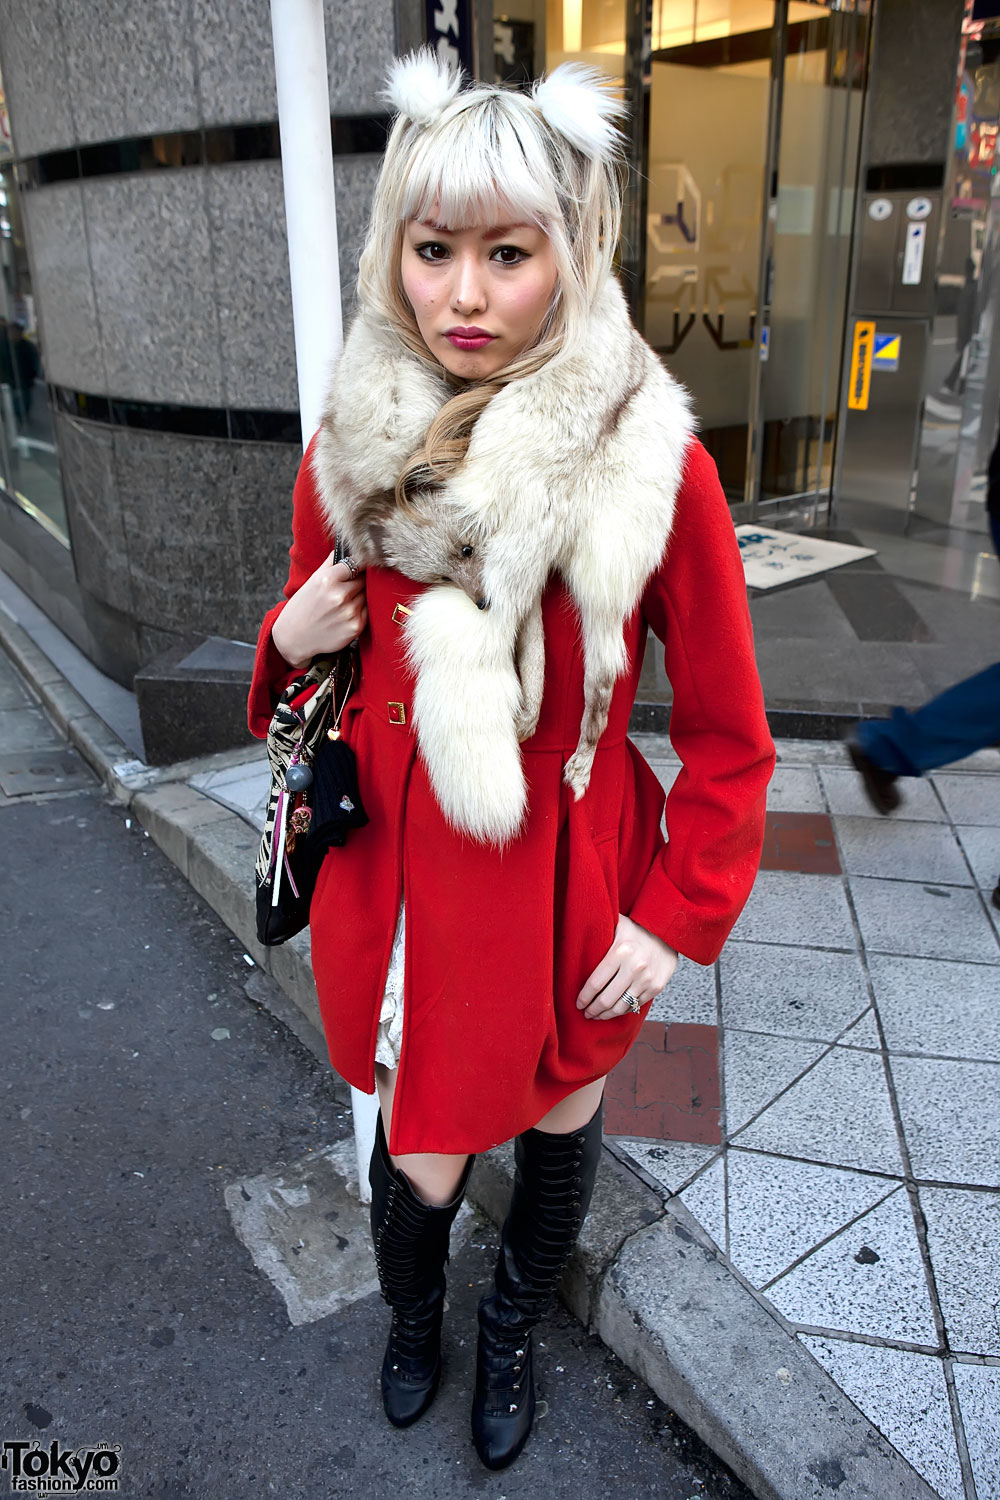 Red Jacket and Fur in Shibuya